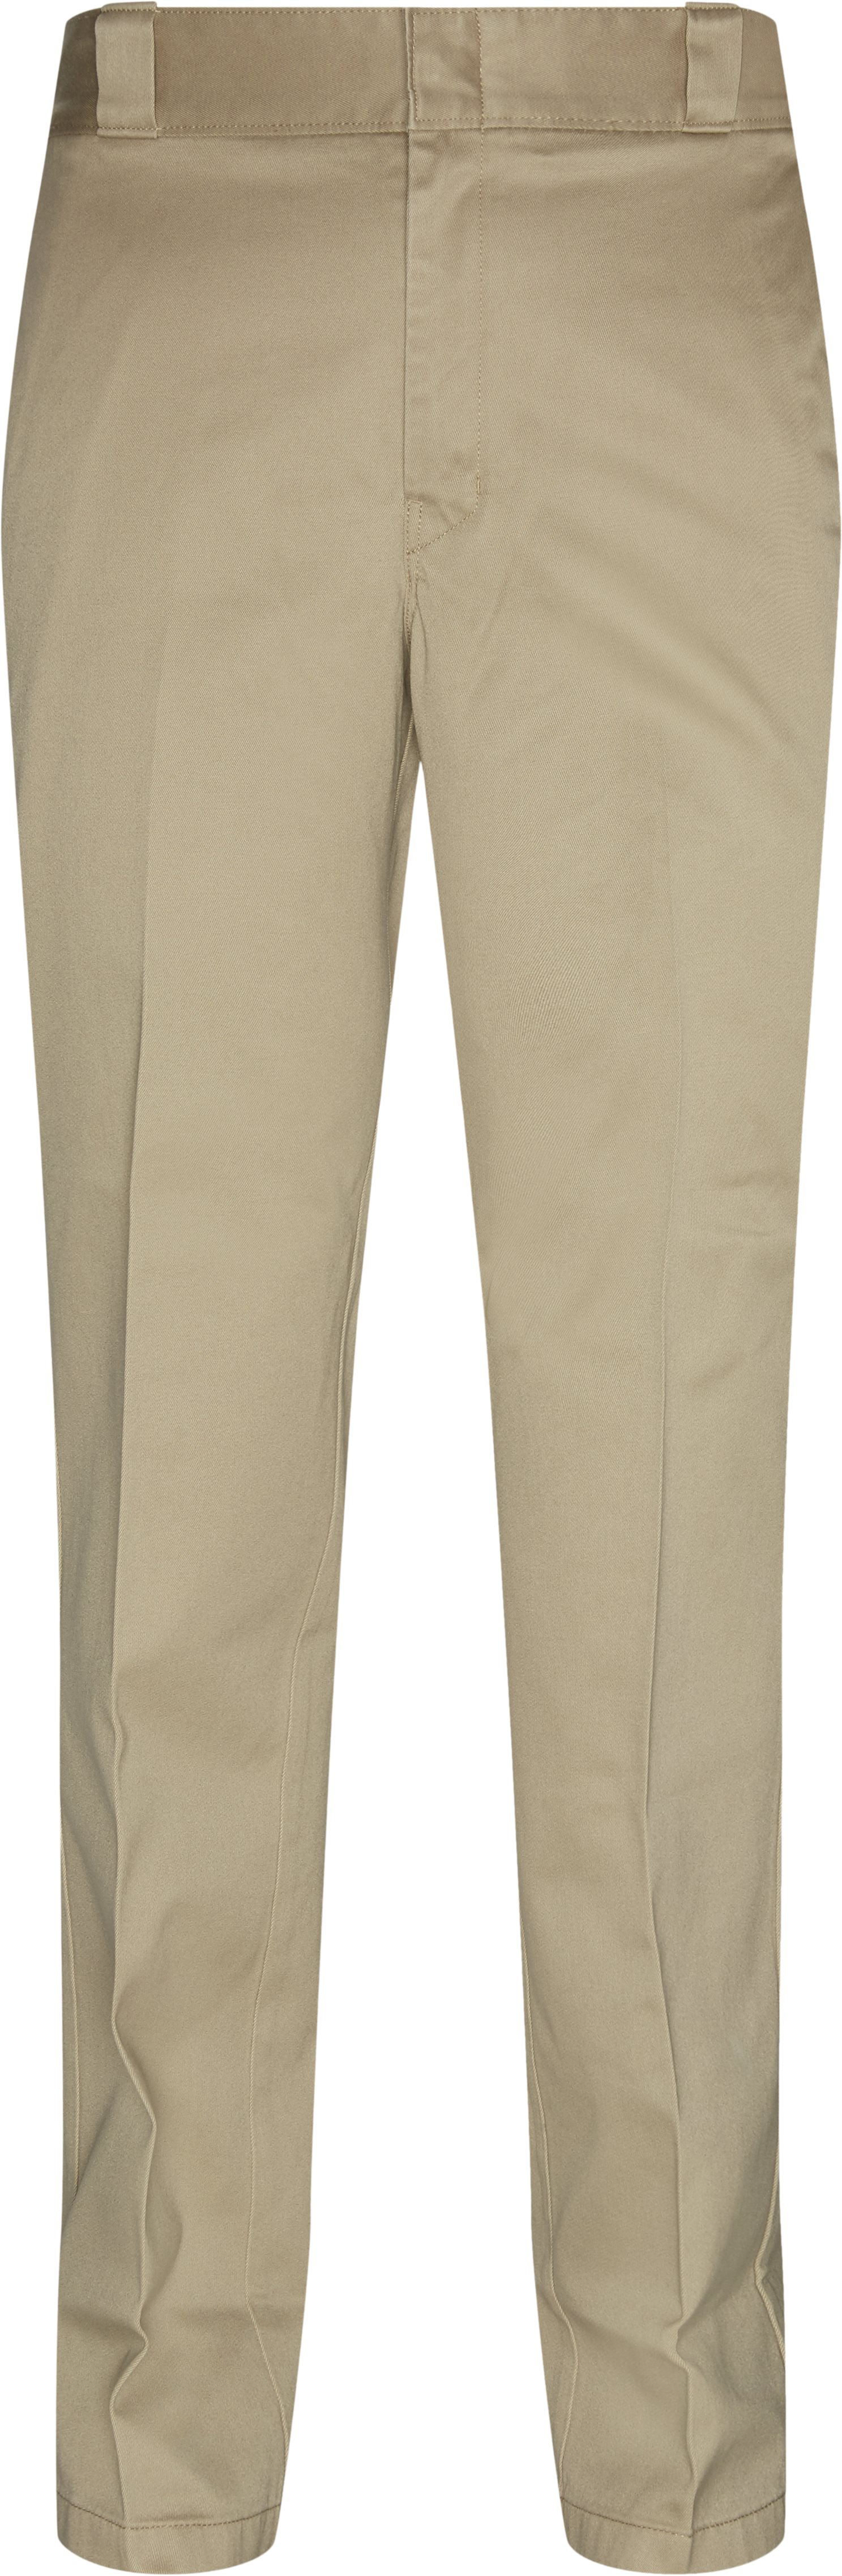 Pleated Cotton Chinos - Bukser - Regular - Sand